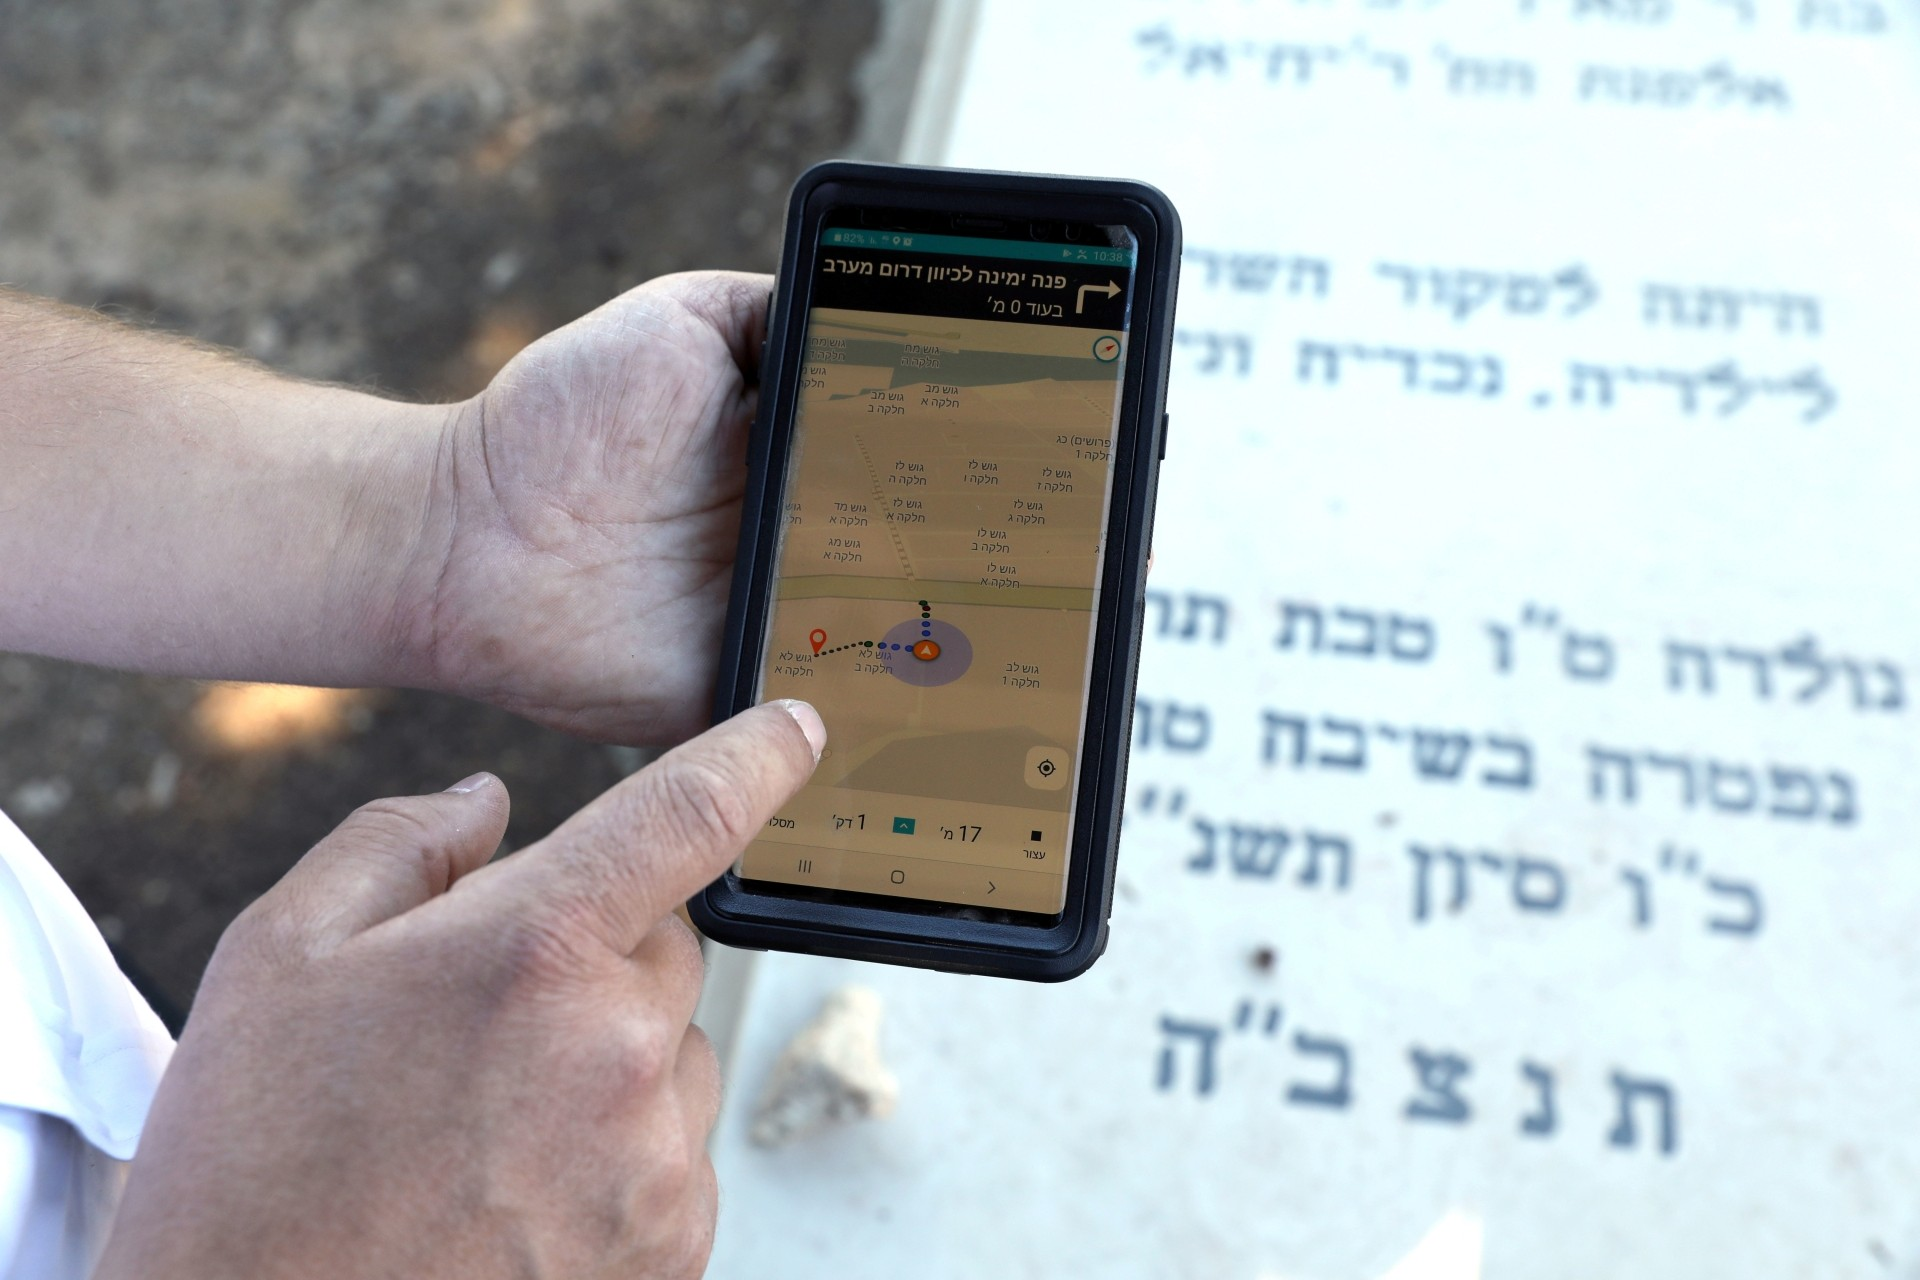 The Gravez app offers turn-by-turn voice directions to help cemetery visitors navigate large graveyards in search of a loved-one's resting place.